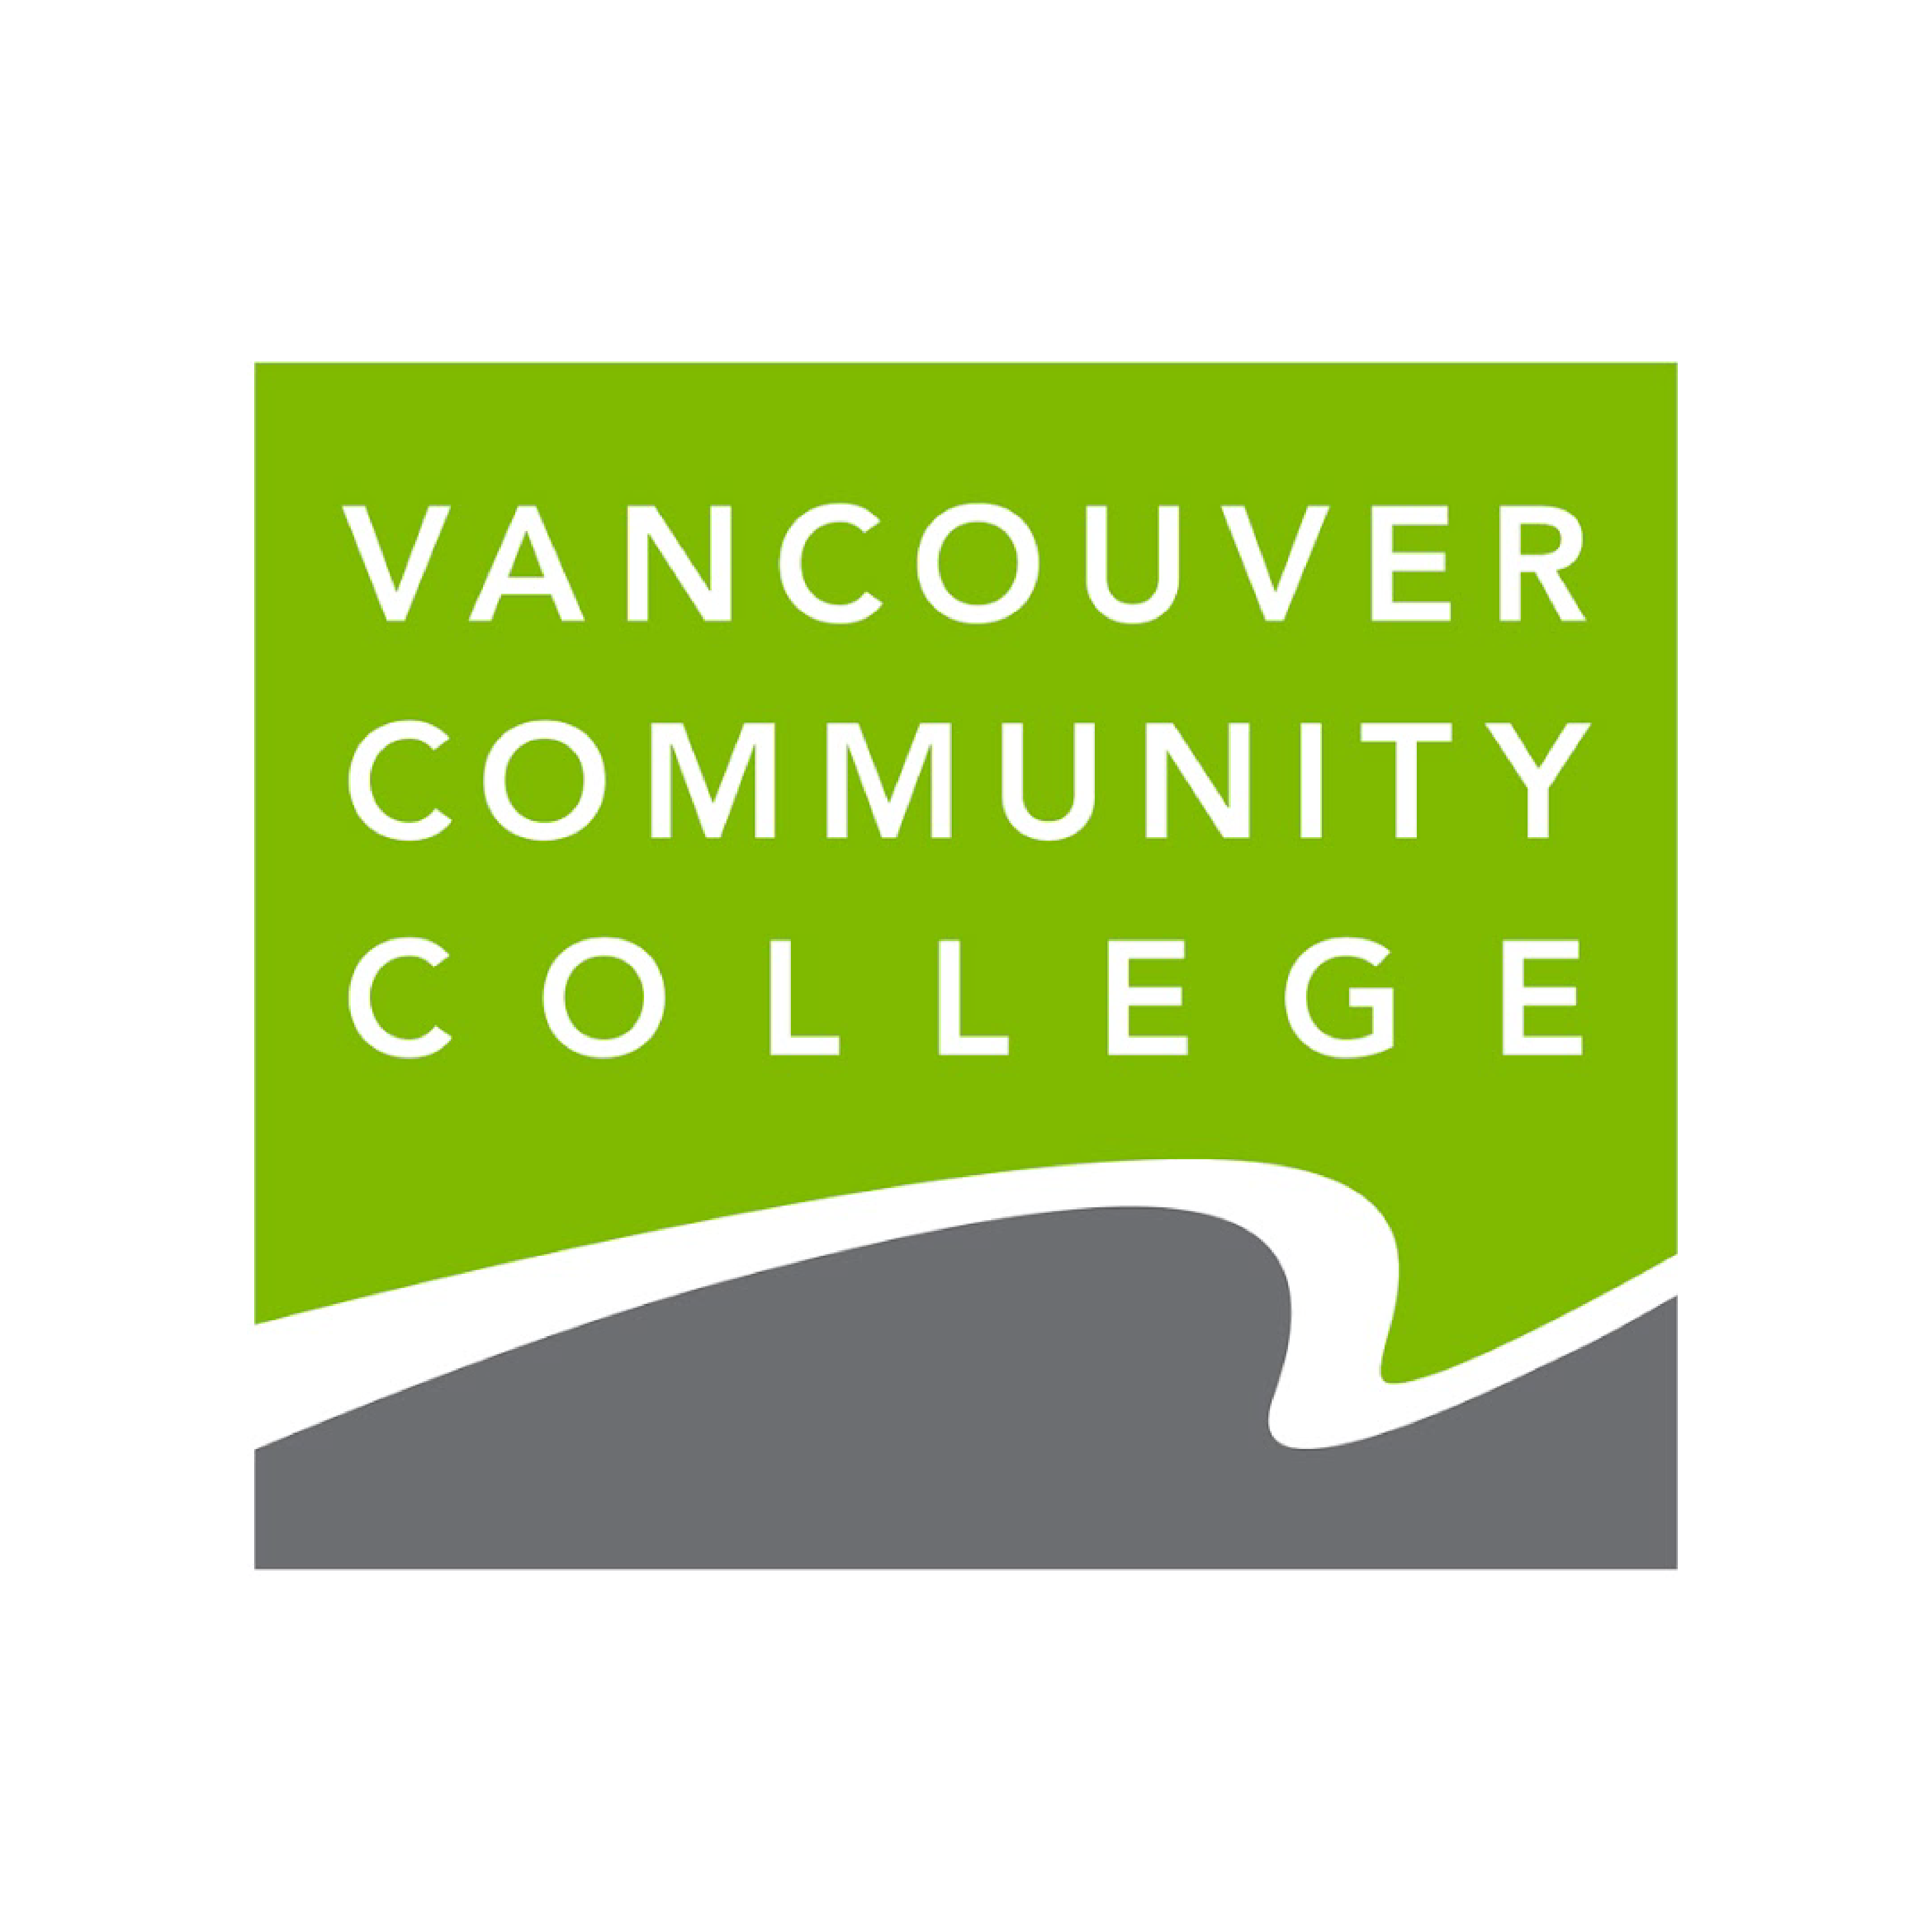 Smarties Partners, Yes Study, Aug 2020_Vancouver Community College